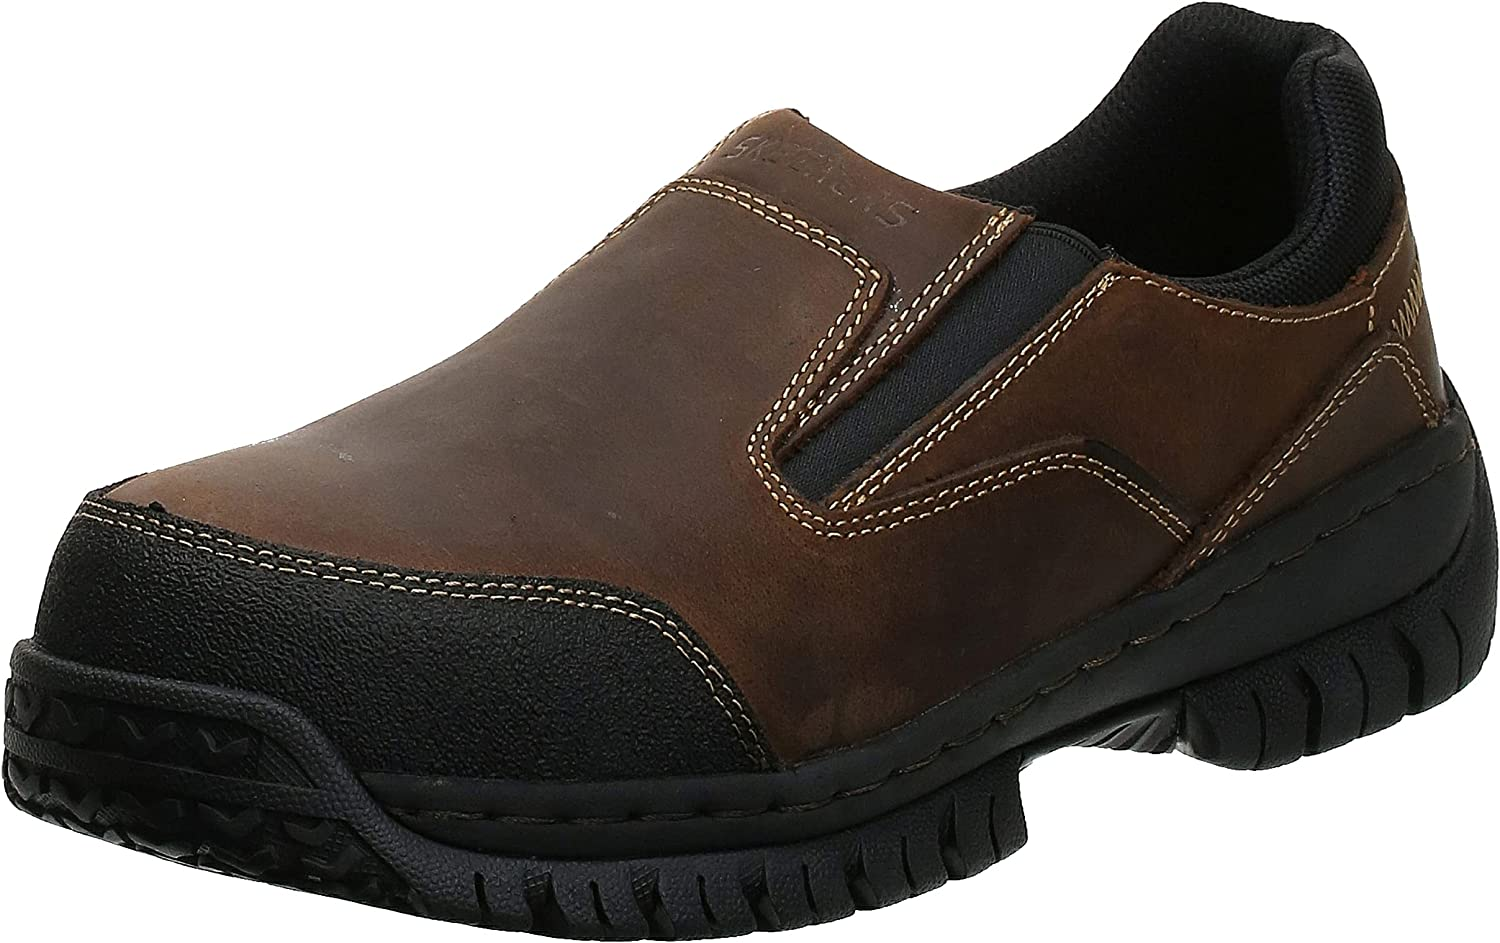 Skechers Animer and price 40% OFF Cheap Sale revision for Work Men's Hartan Shoe Toe Slip-On Steel